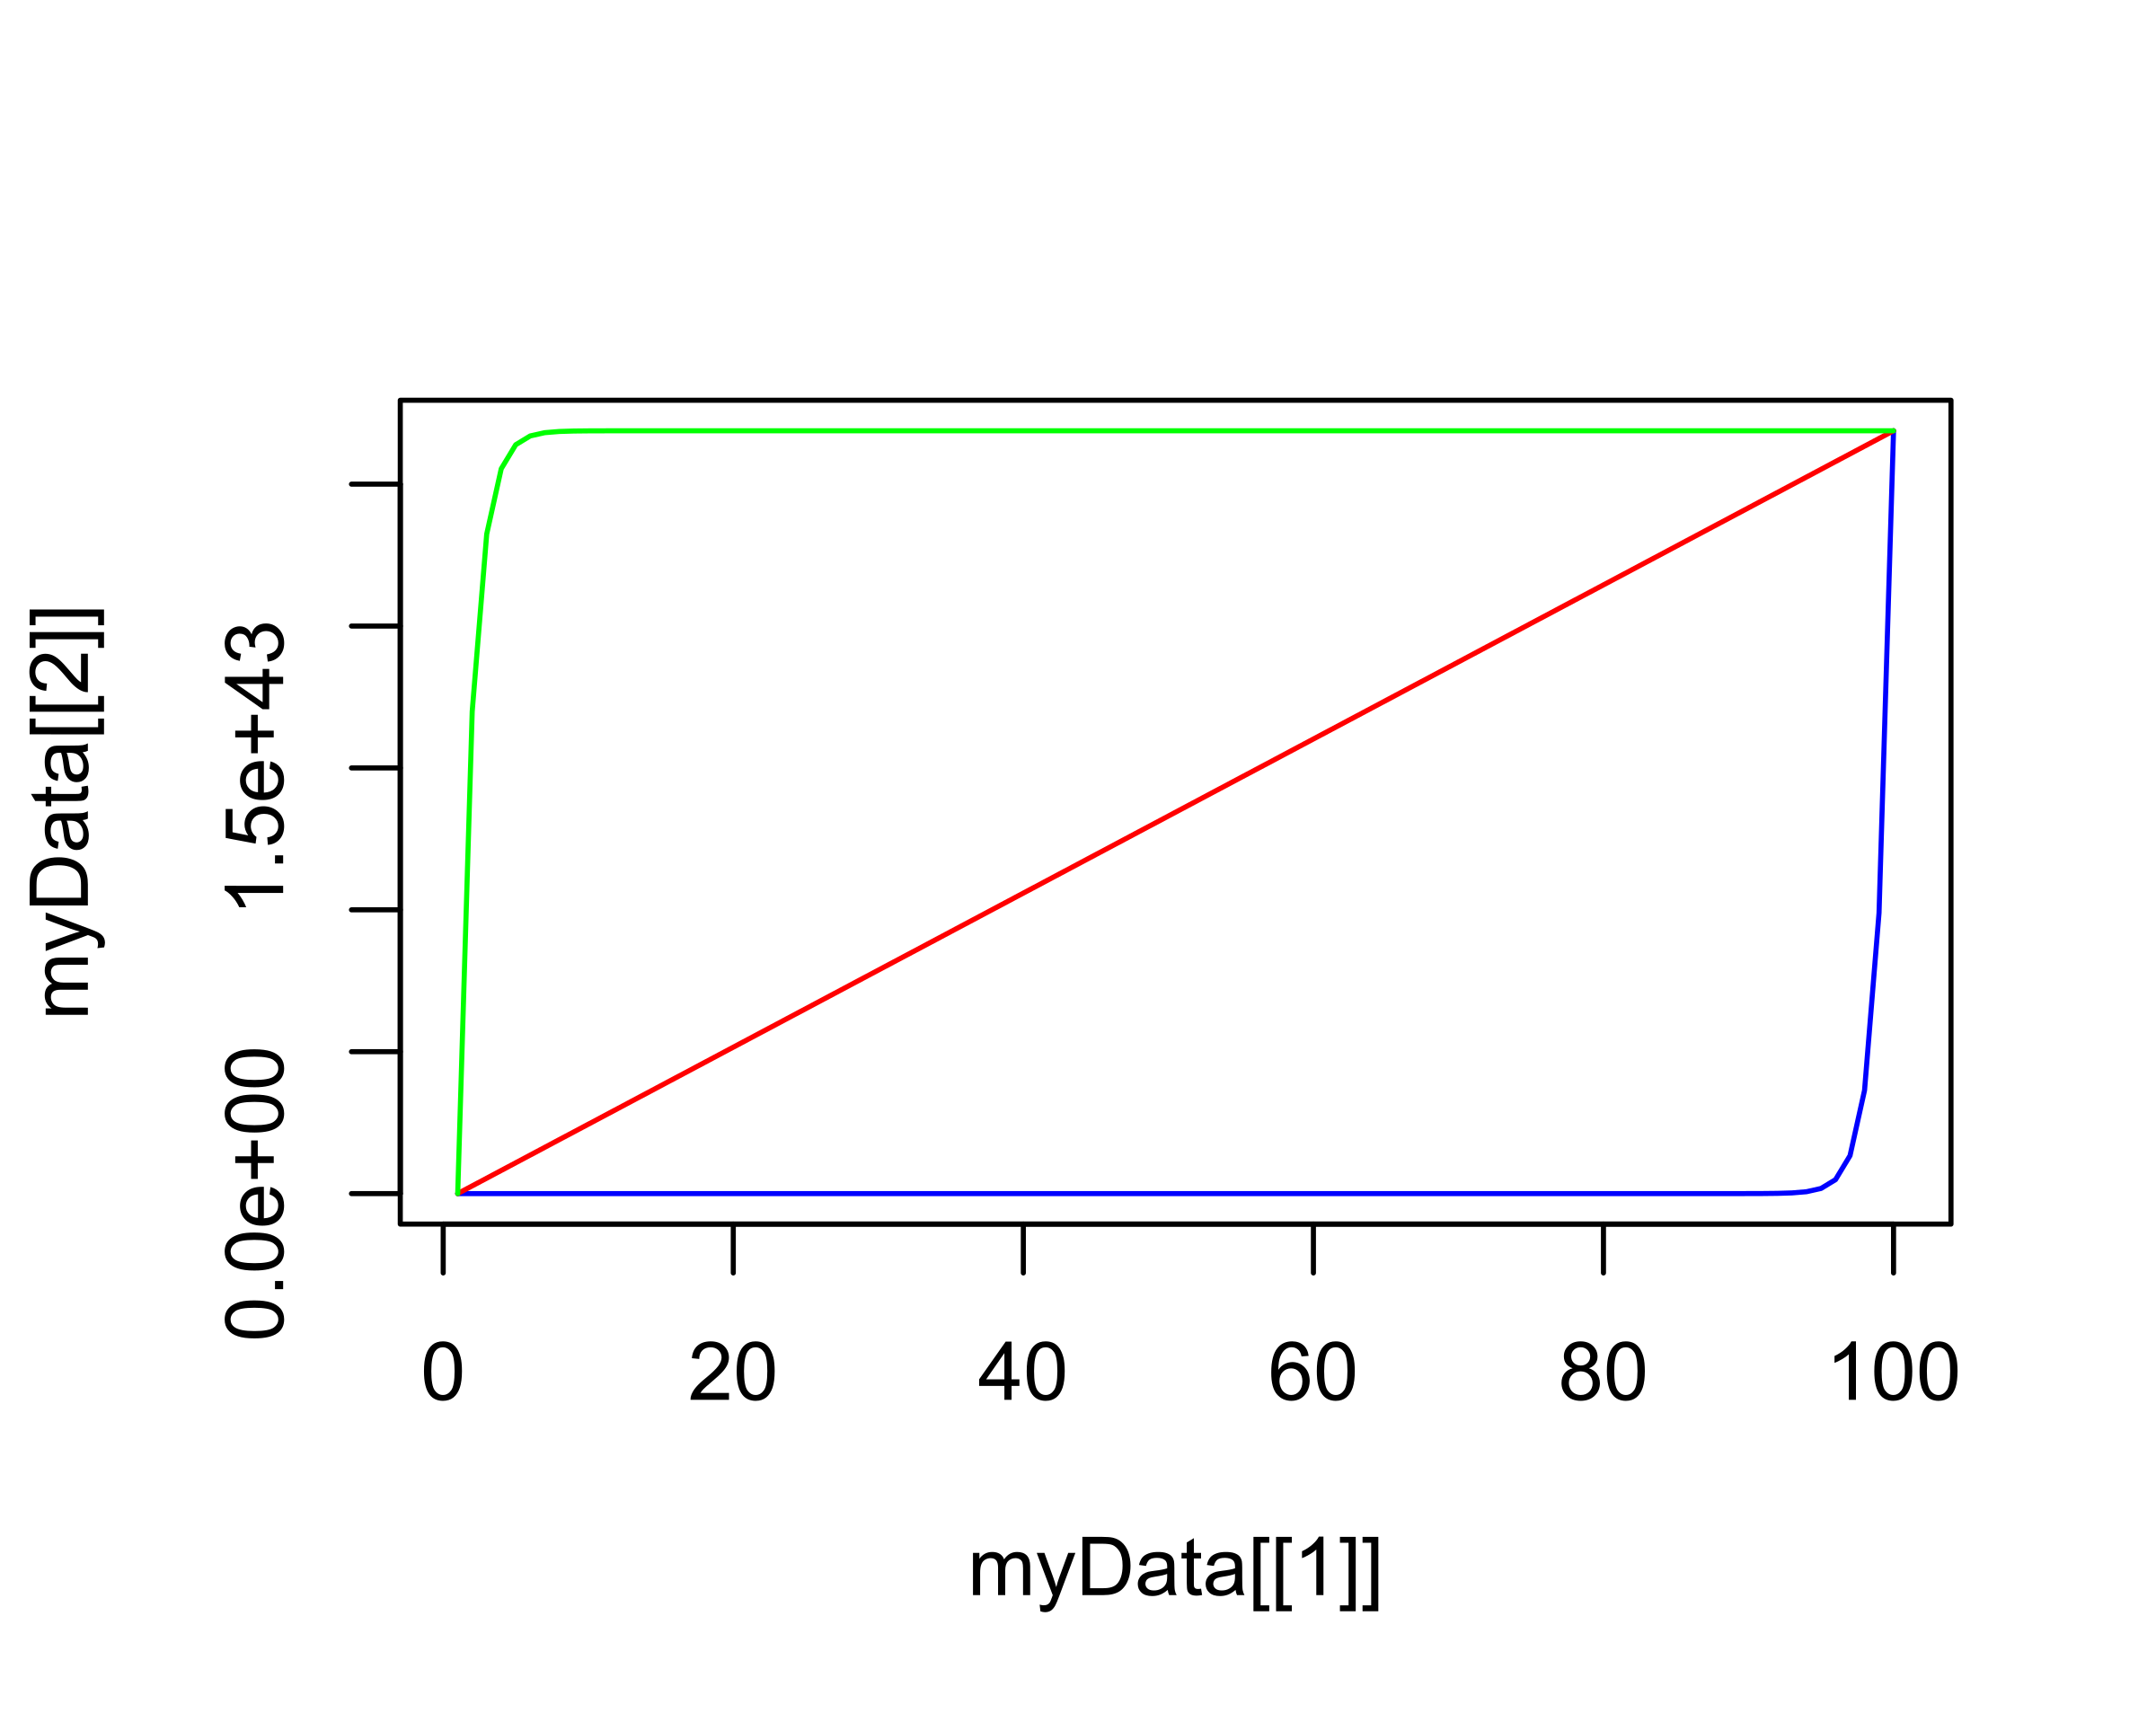 graph1.png